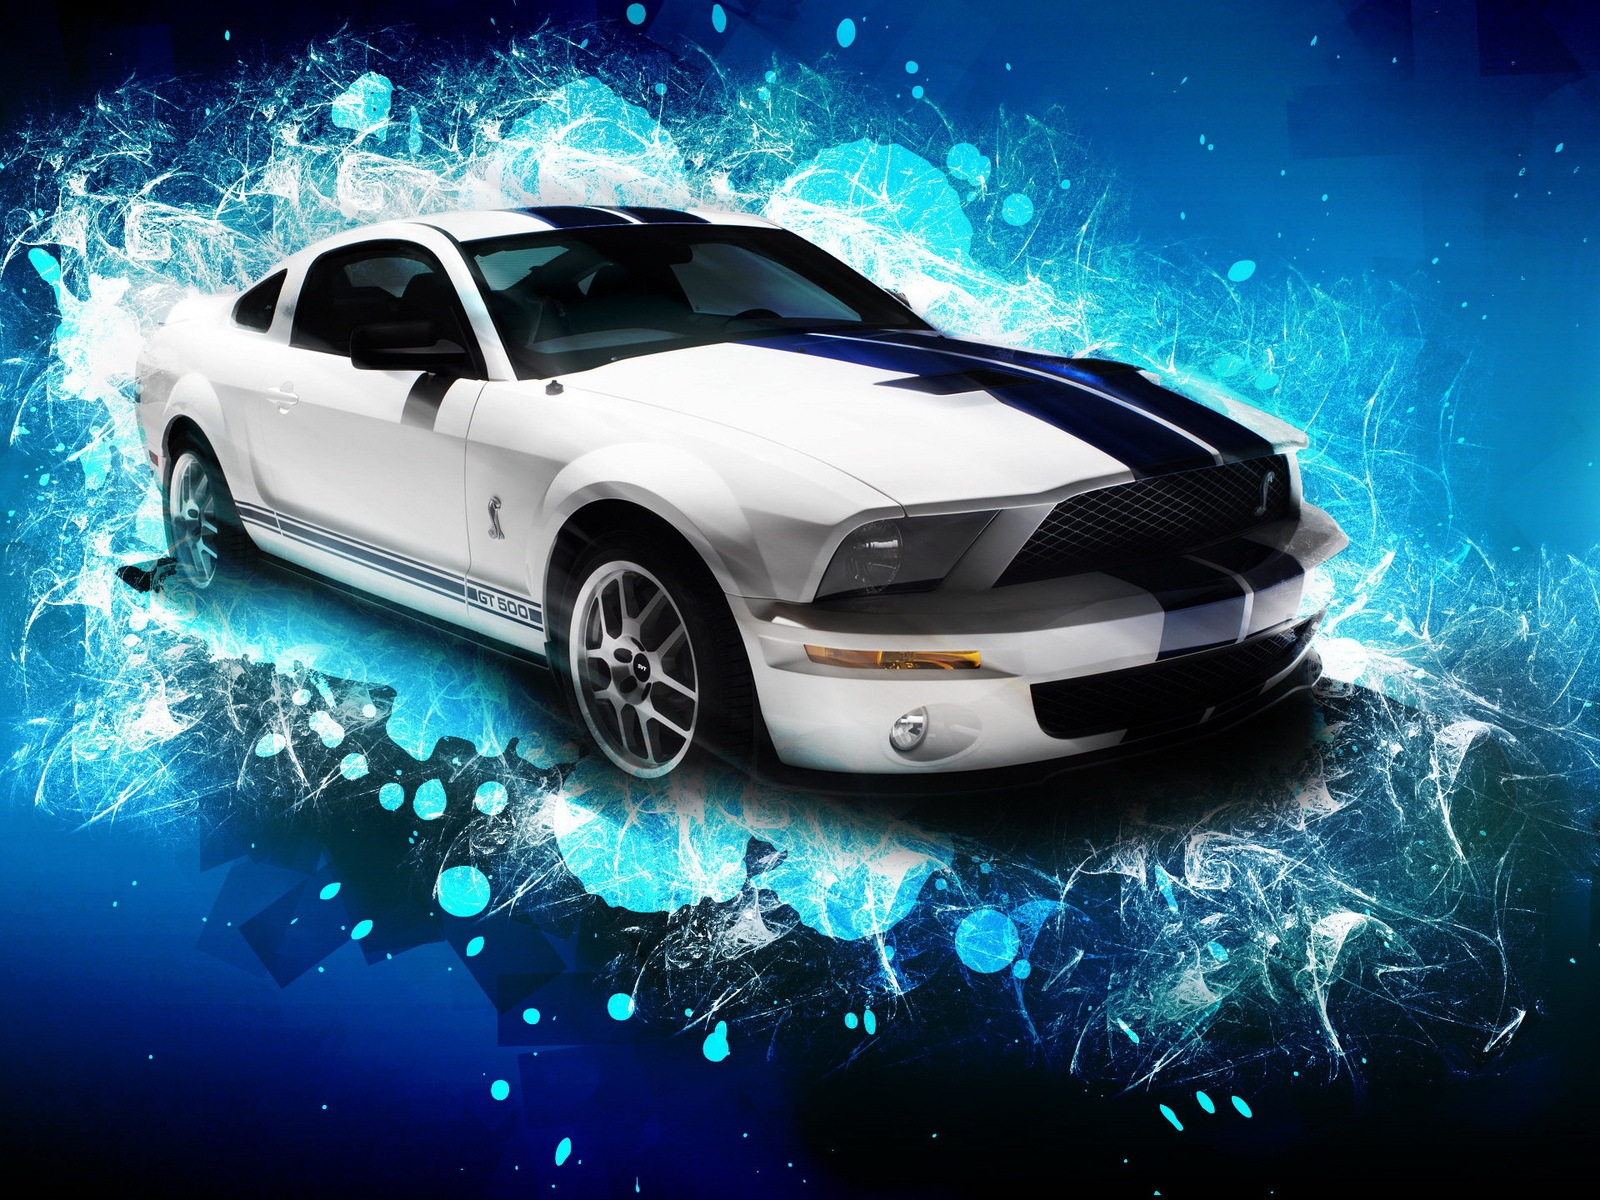 Ford Mustang GT500 Sports Car computer desktop wallpapers 1600x1200